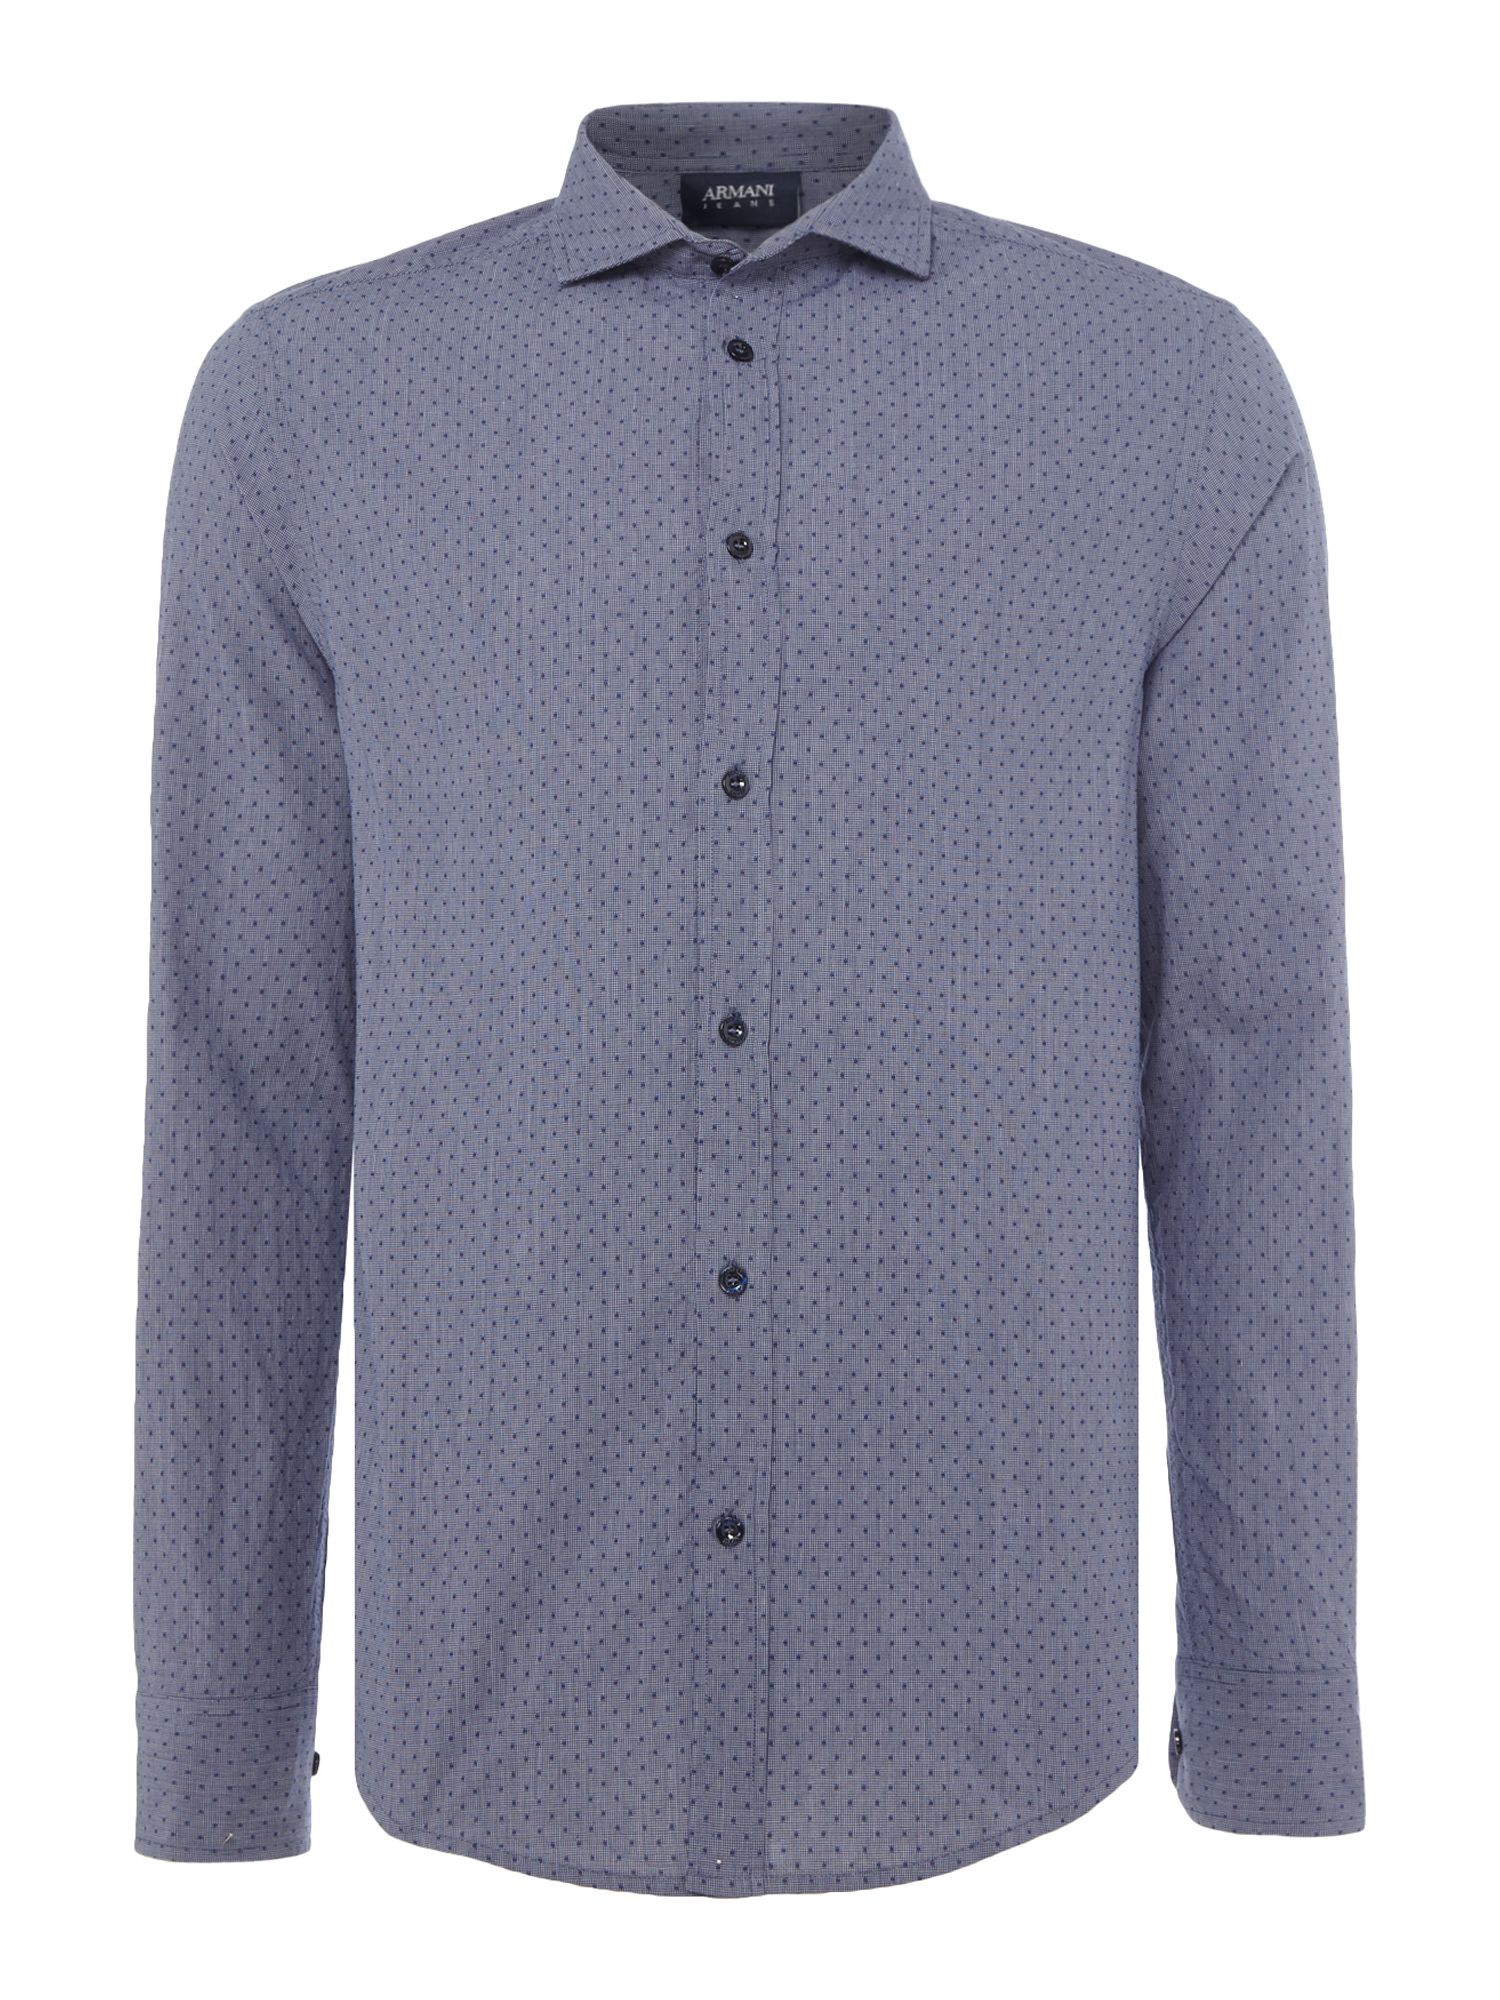 Mens Armani Jeans Regular fit dotted chambray long sleeve shirt Navy